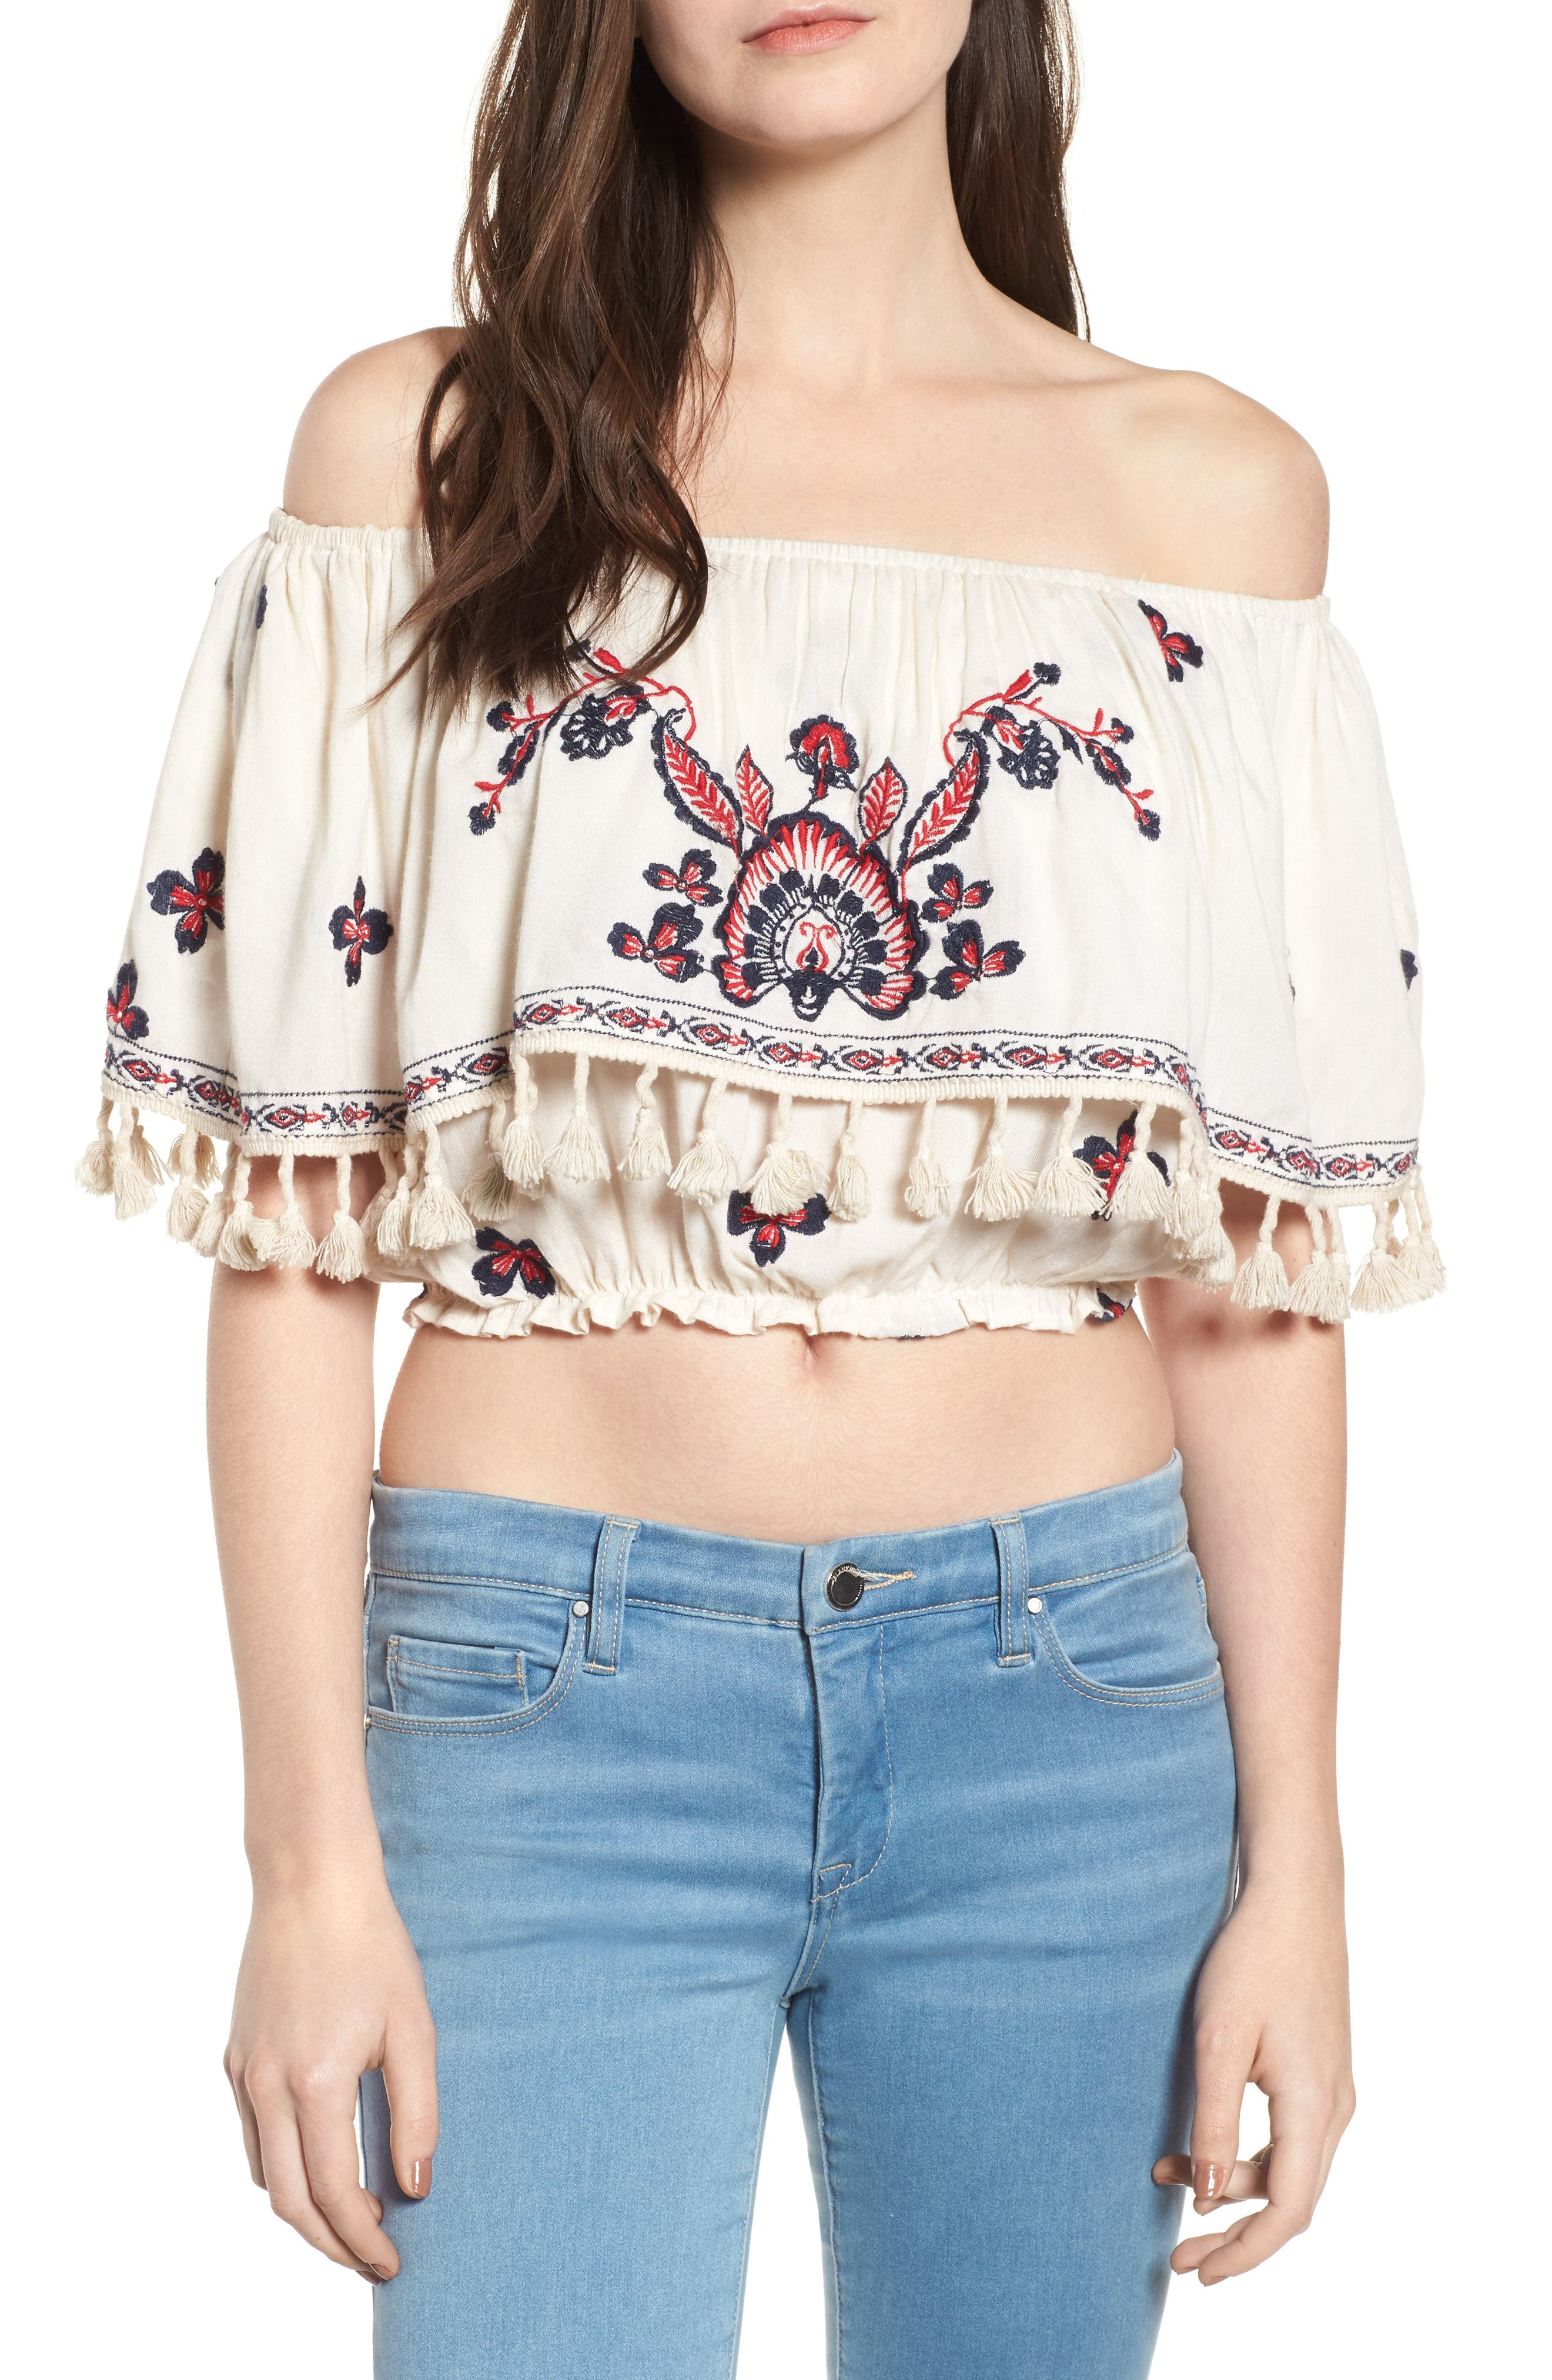 Tessi Embroidered Off the Shoulder Crop Top,                             Main thumbnail 1, color,                             Sugar Cookie